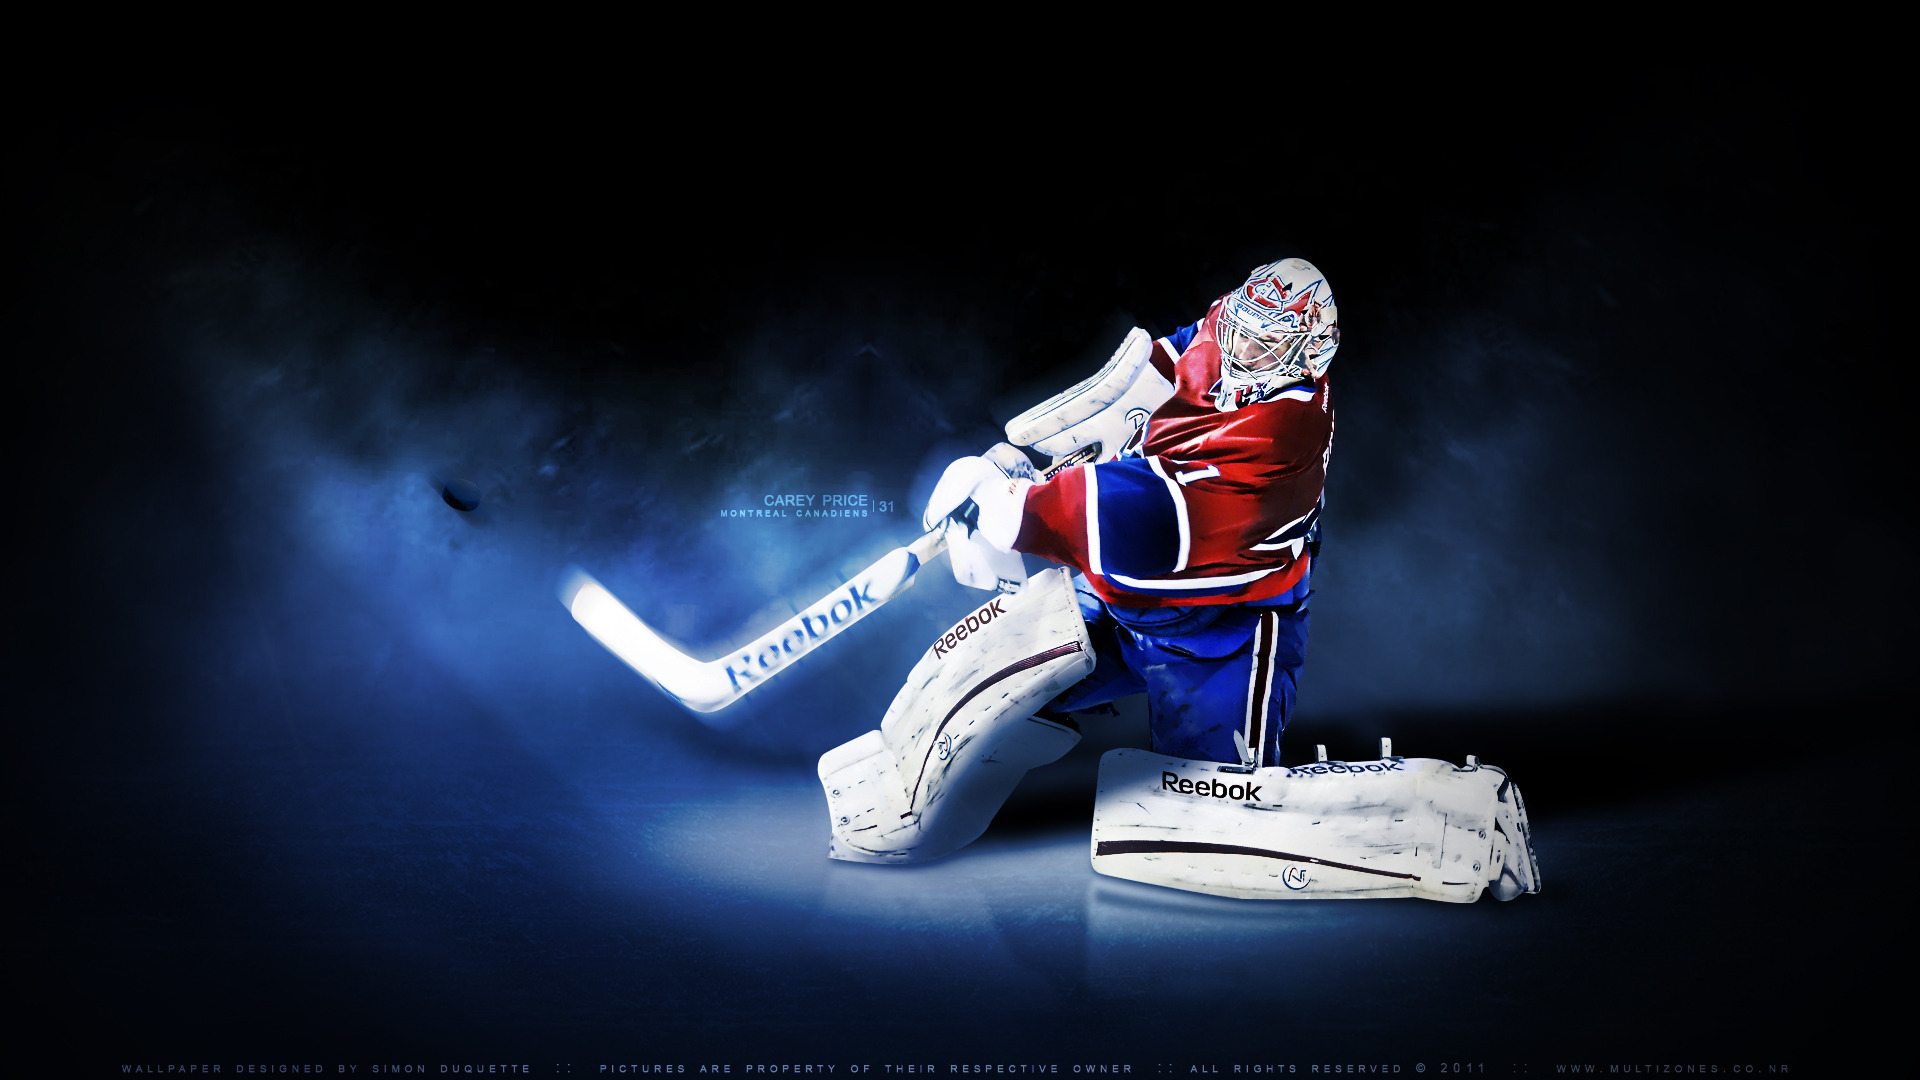 Carey Price Montreal Canadiens Wallpaper 1920x1080